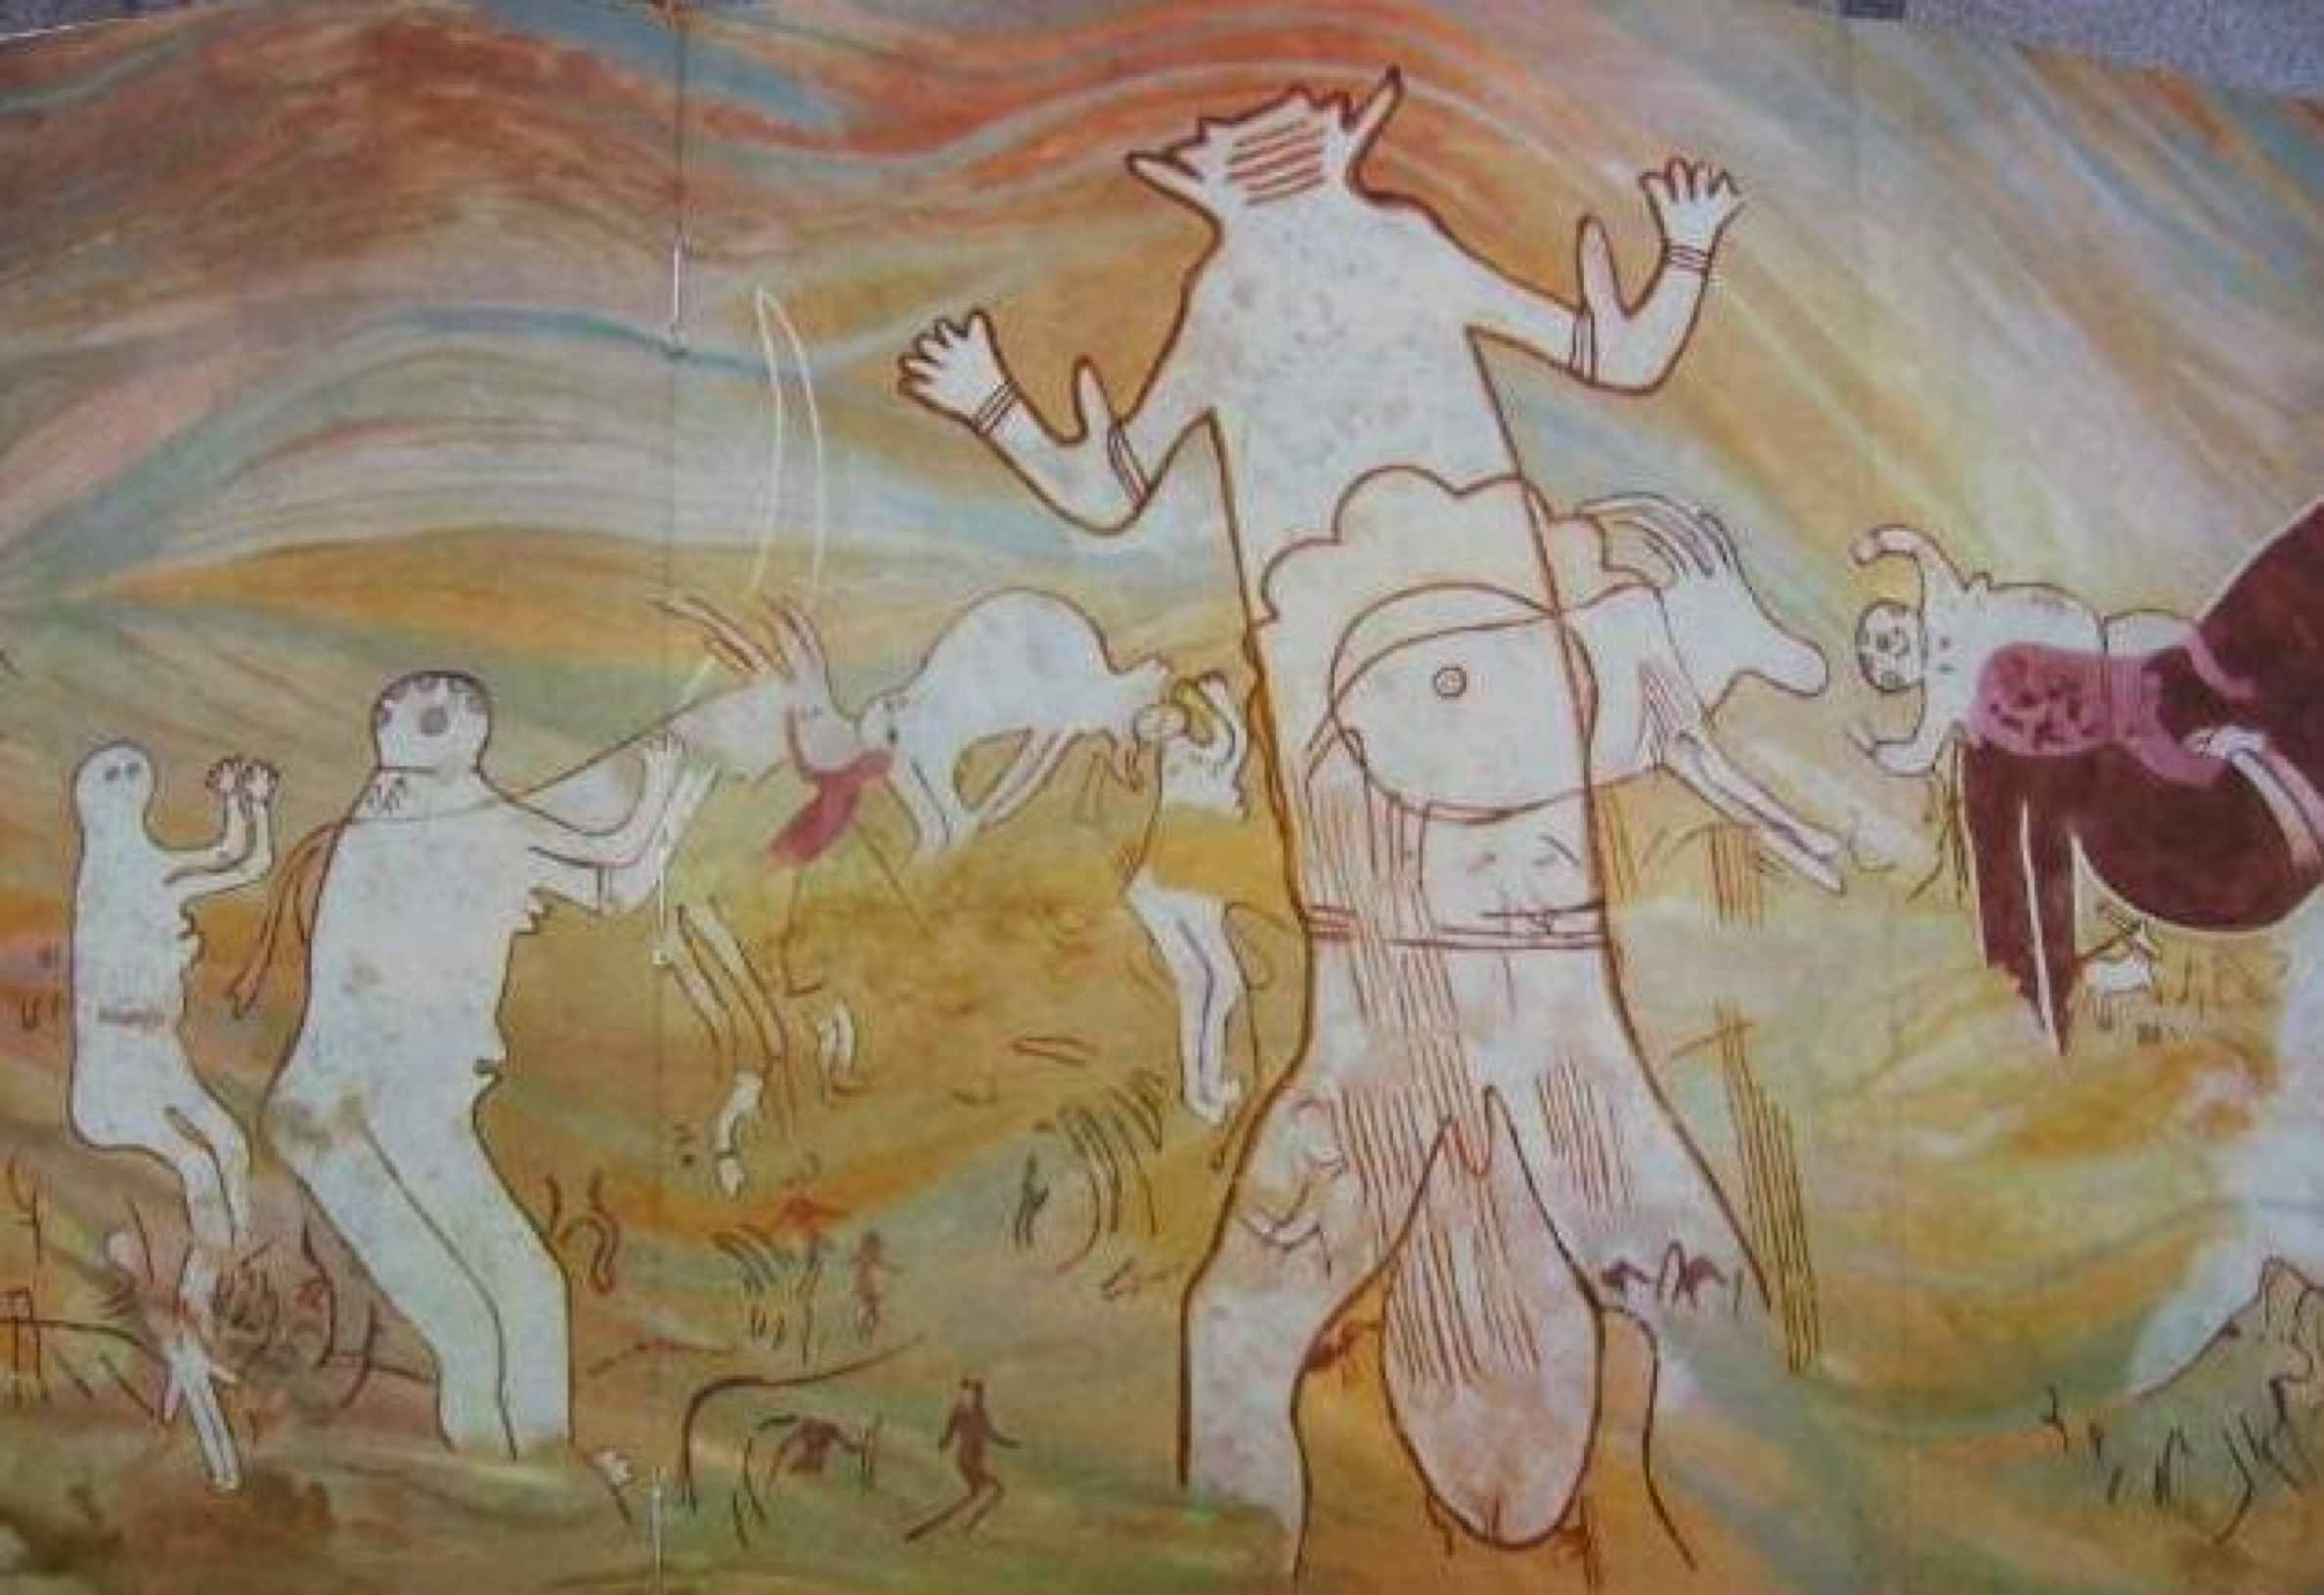 Giants and beings of unknown origin were recorded by the ancients 4